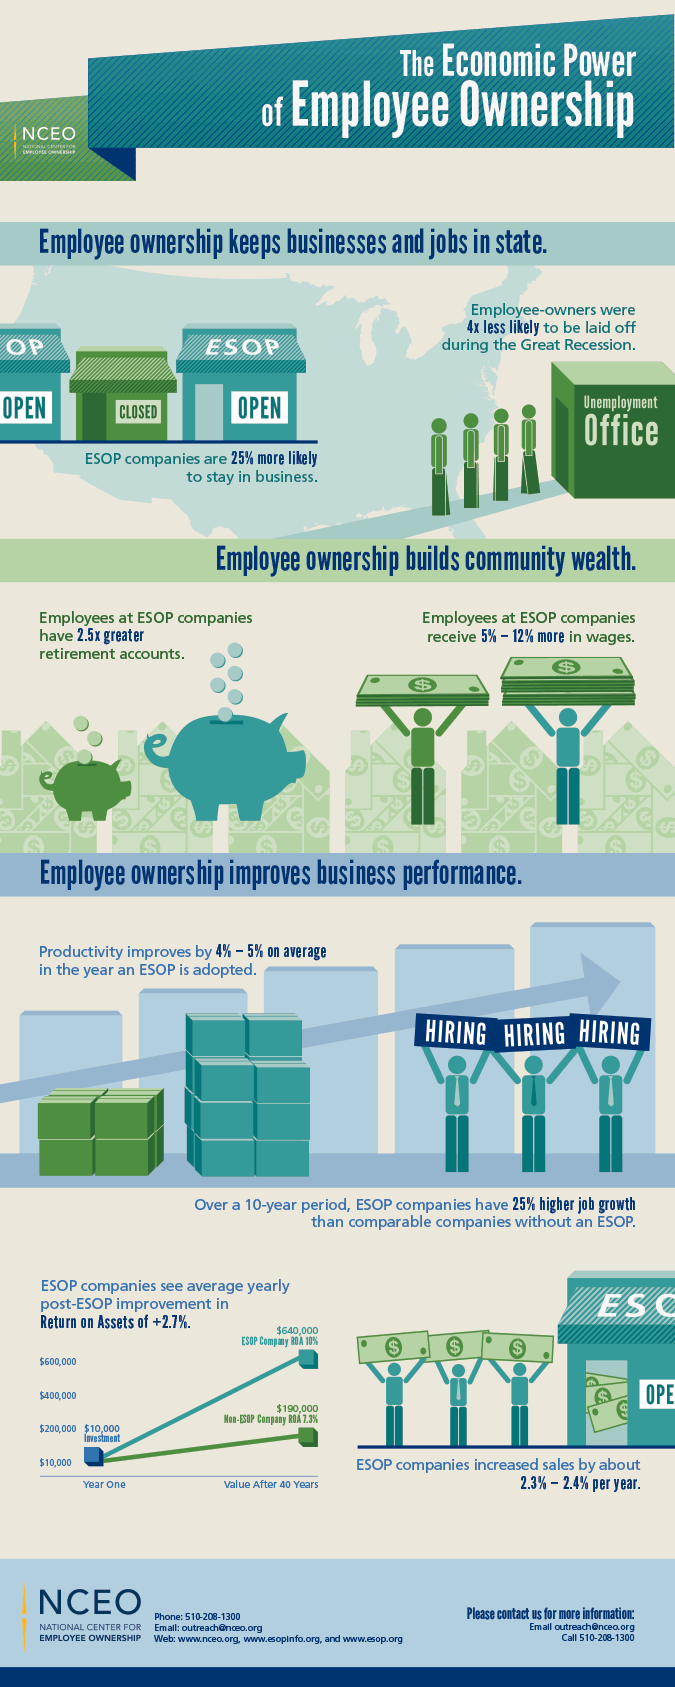 The Economic Power of Employee Ownership